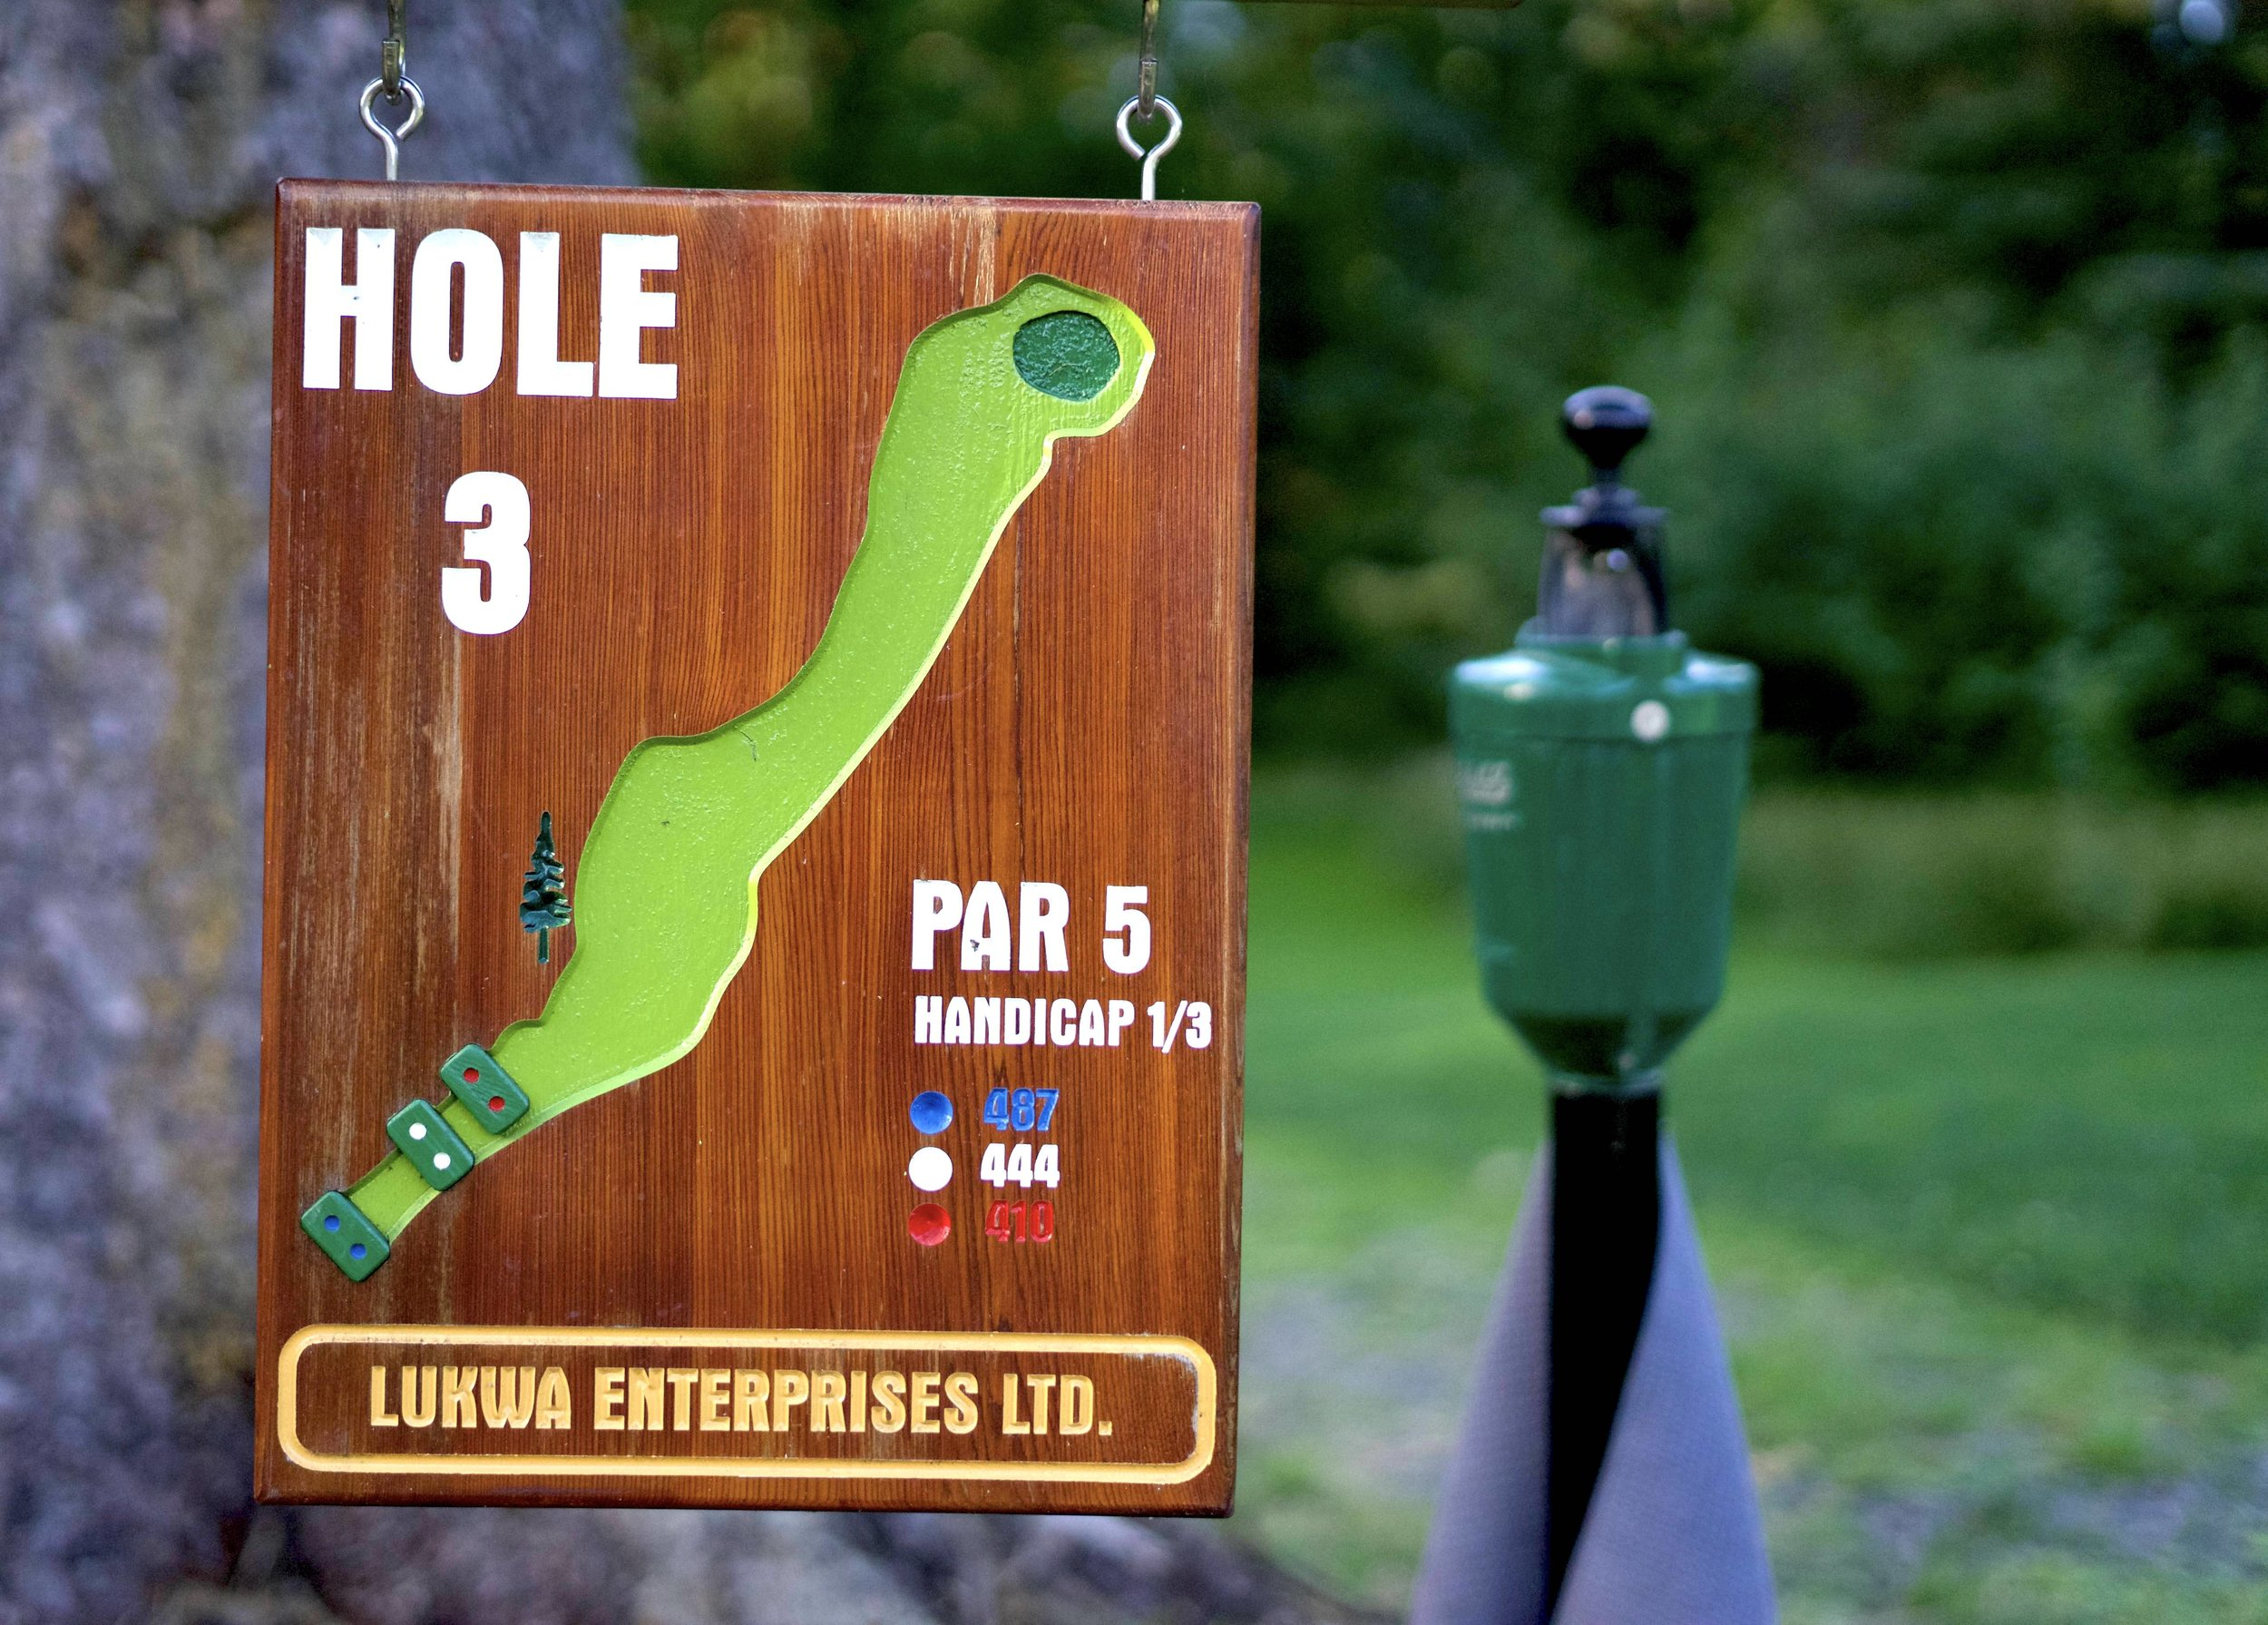 QuadraGolf_Hole3_sign_DSC00331.jpg